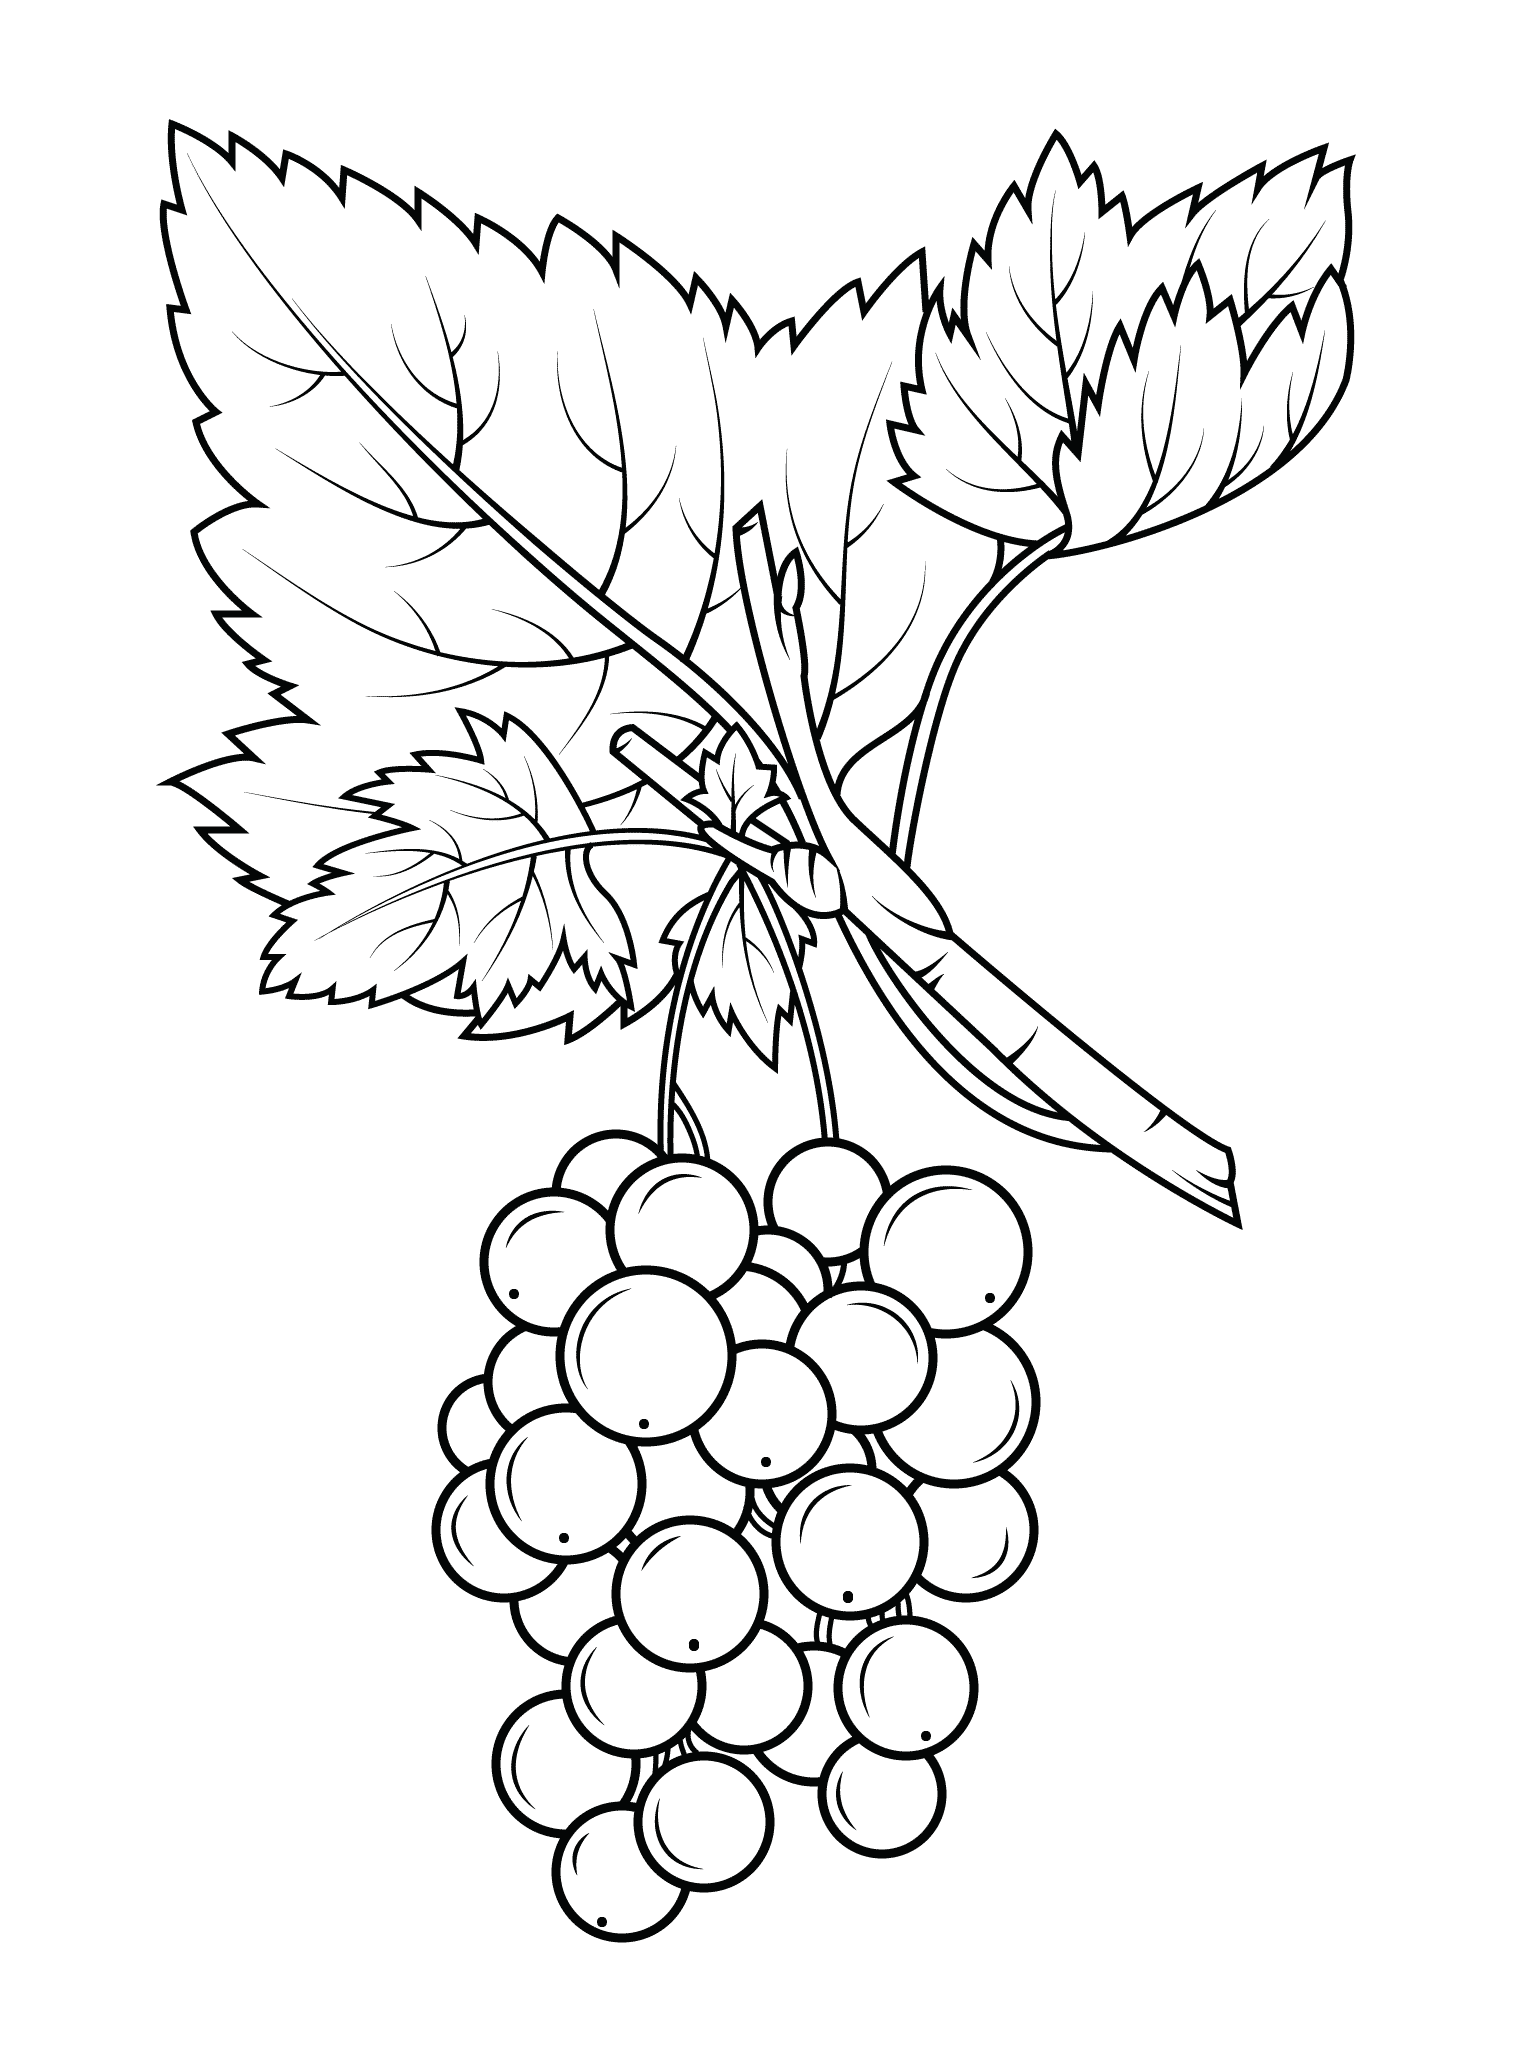 coloring picture of grapes coloring picture of grapes coloring picture of grapes